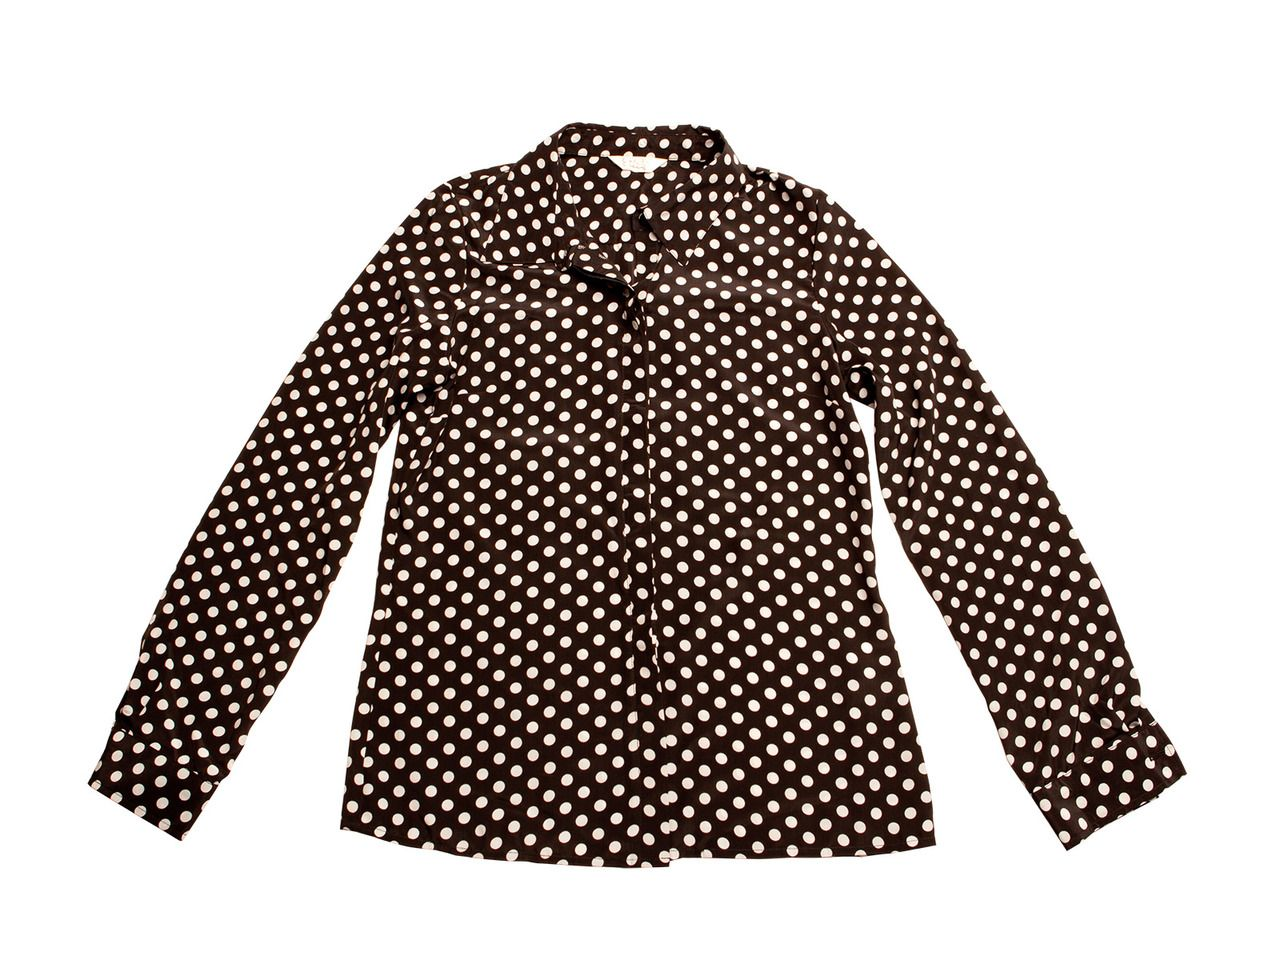 Basic polka dot blouse.